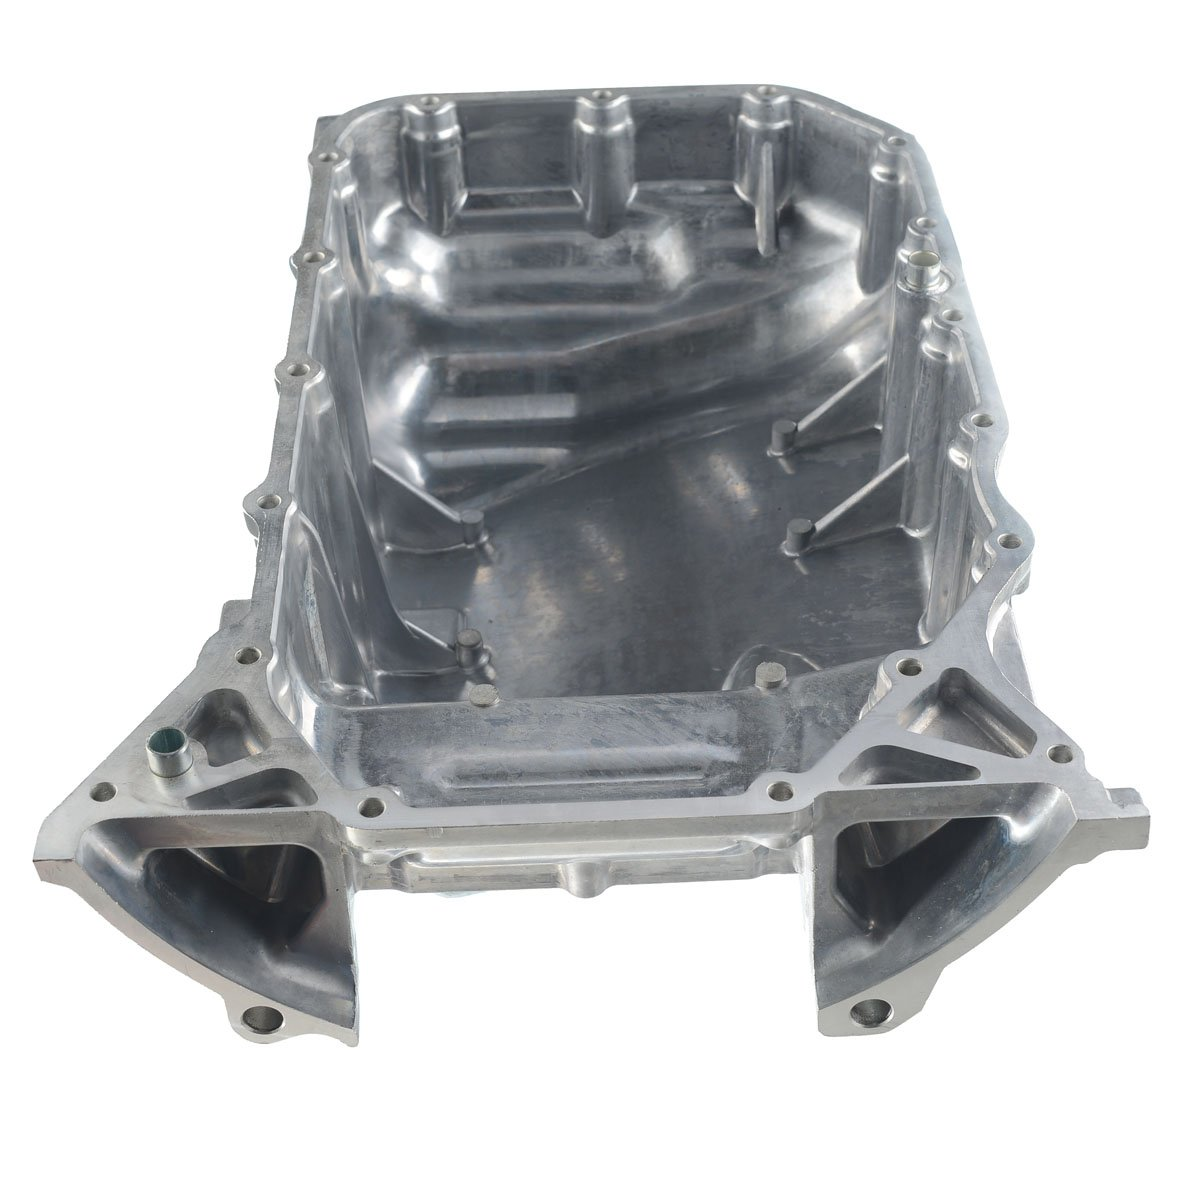 Engine Oil Pan For Honda Accord 2008-2012 Crosstour 2012